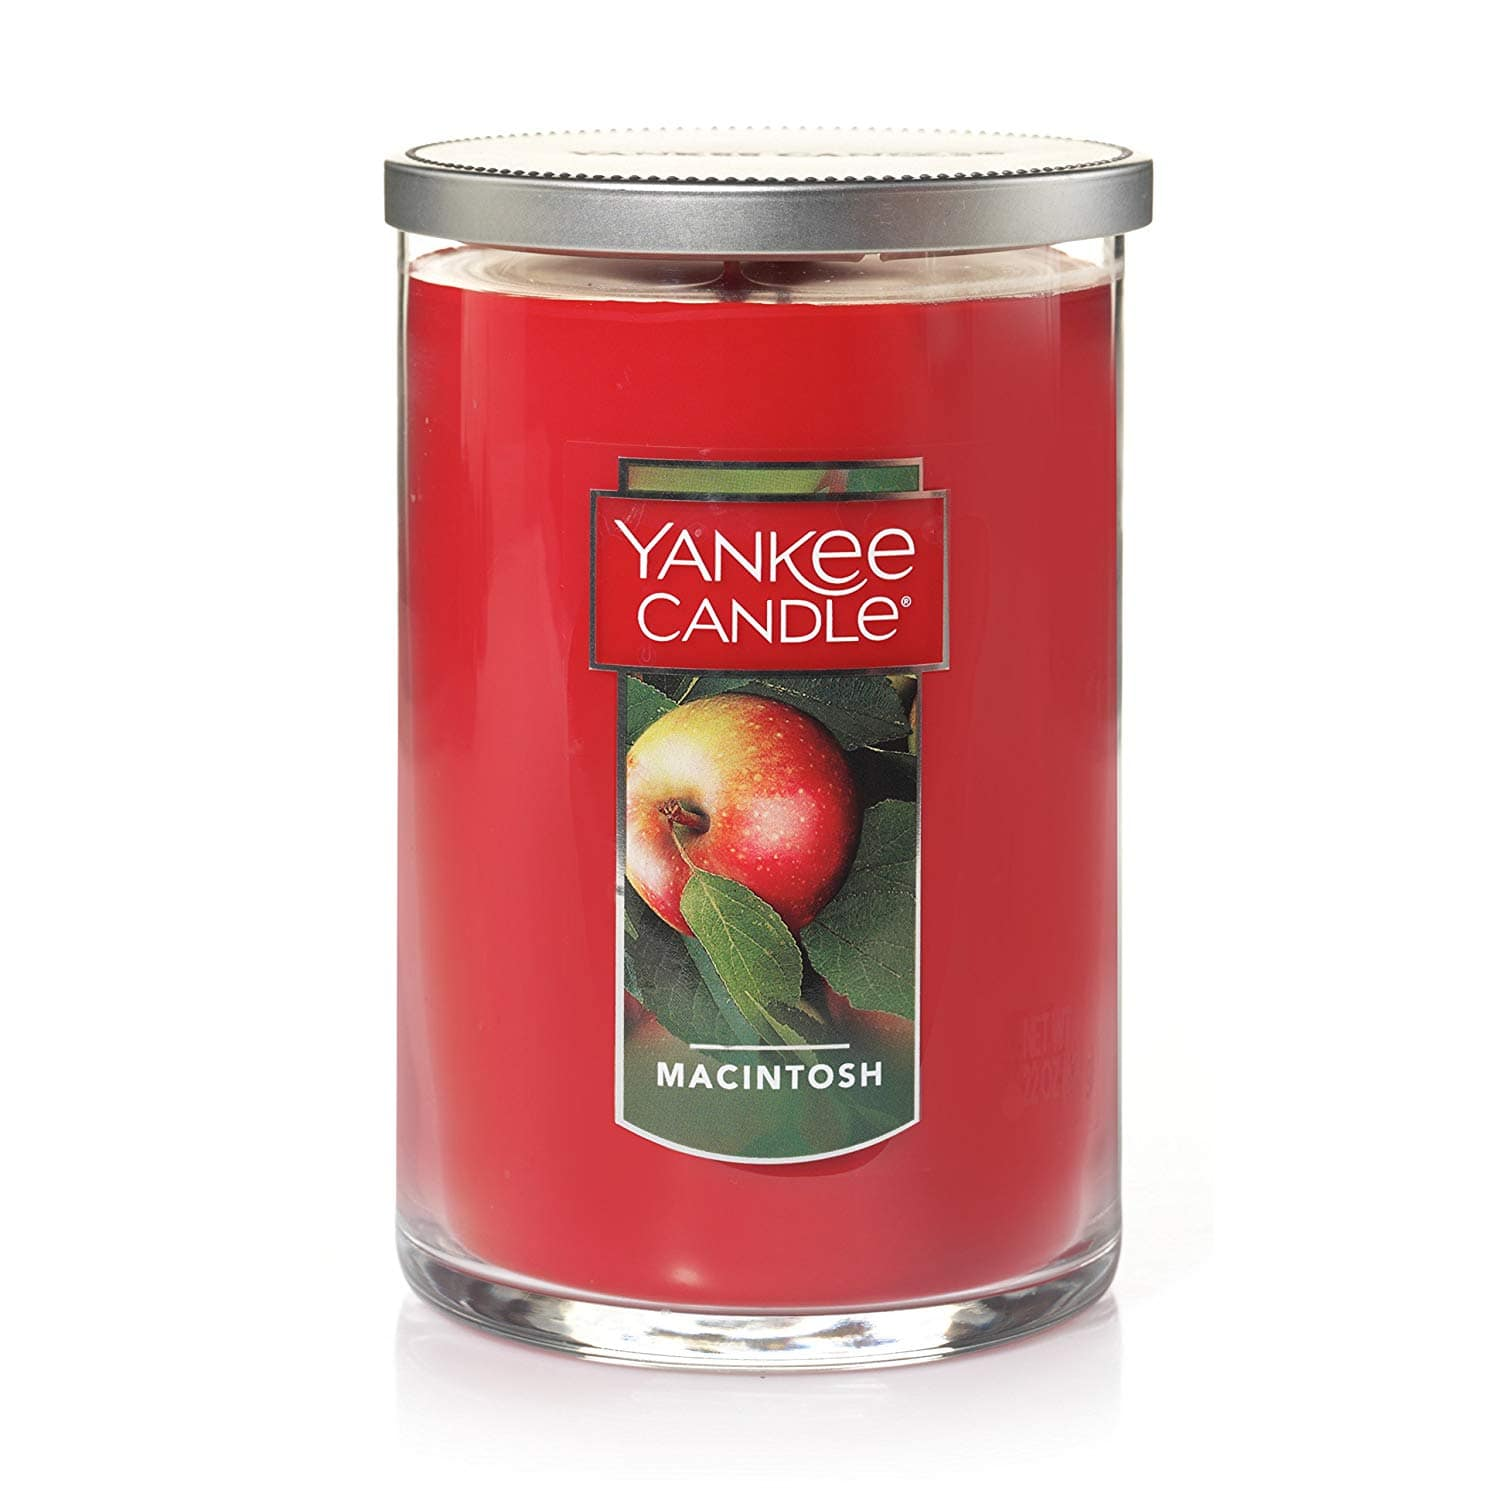 Yankee Candles (Large, Various Scents) $12.50 + Free Shipping w/ Prime